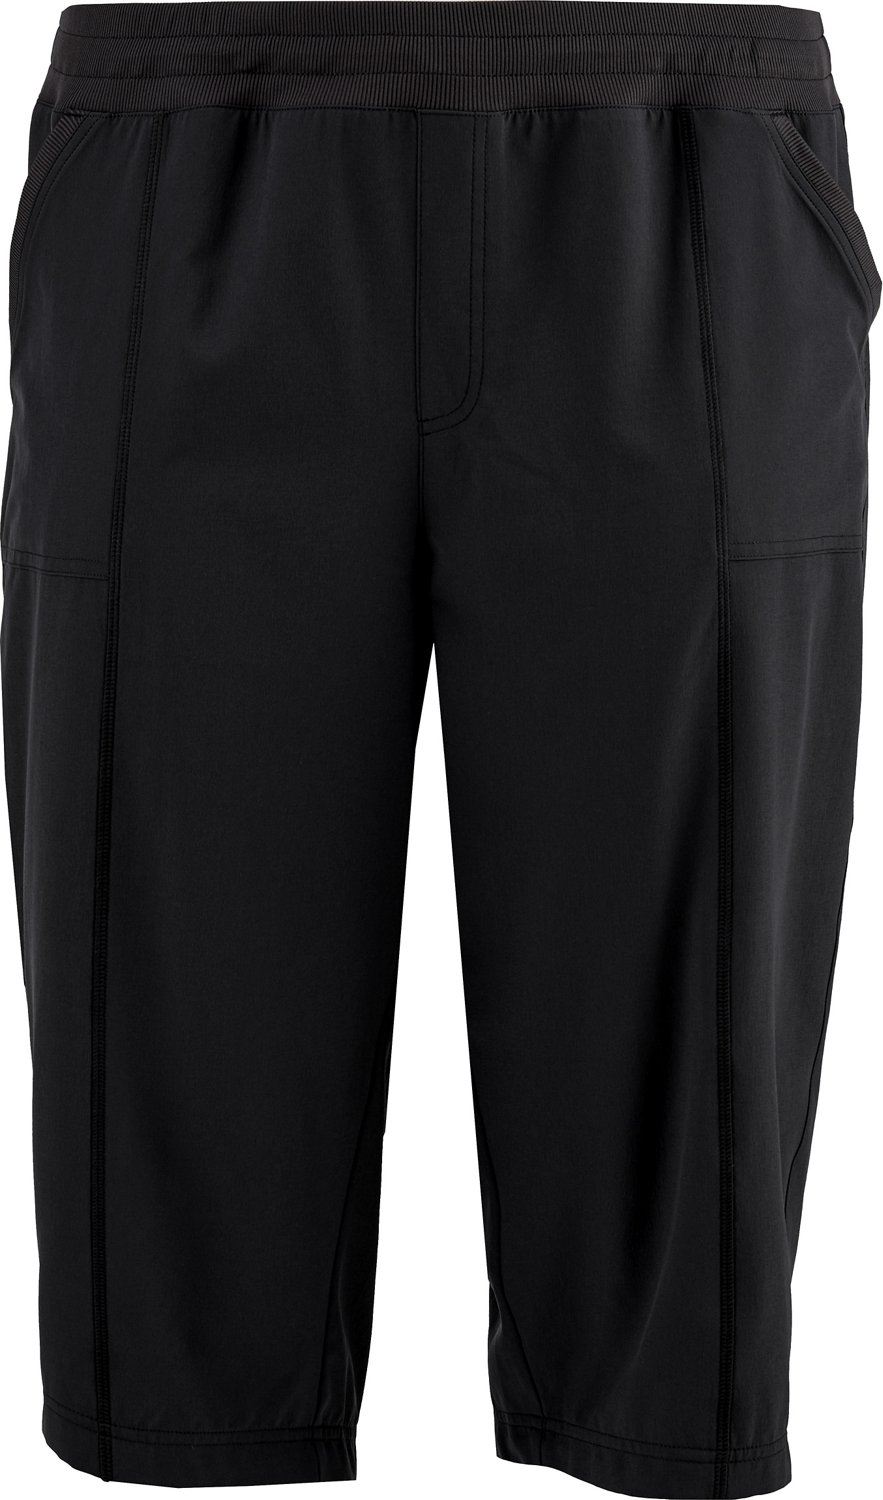 BCG Women's Stretch Woven Plus Size Capri Pants - view number 3